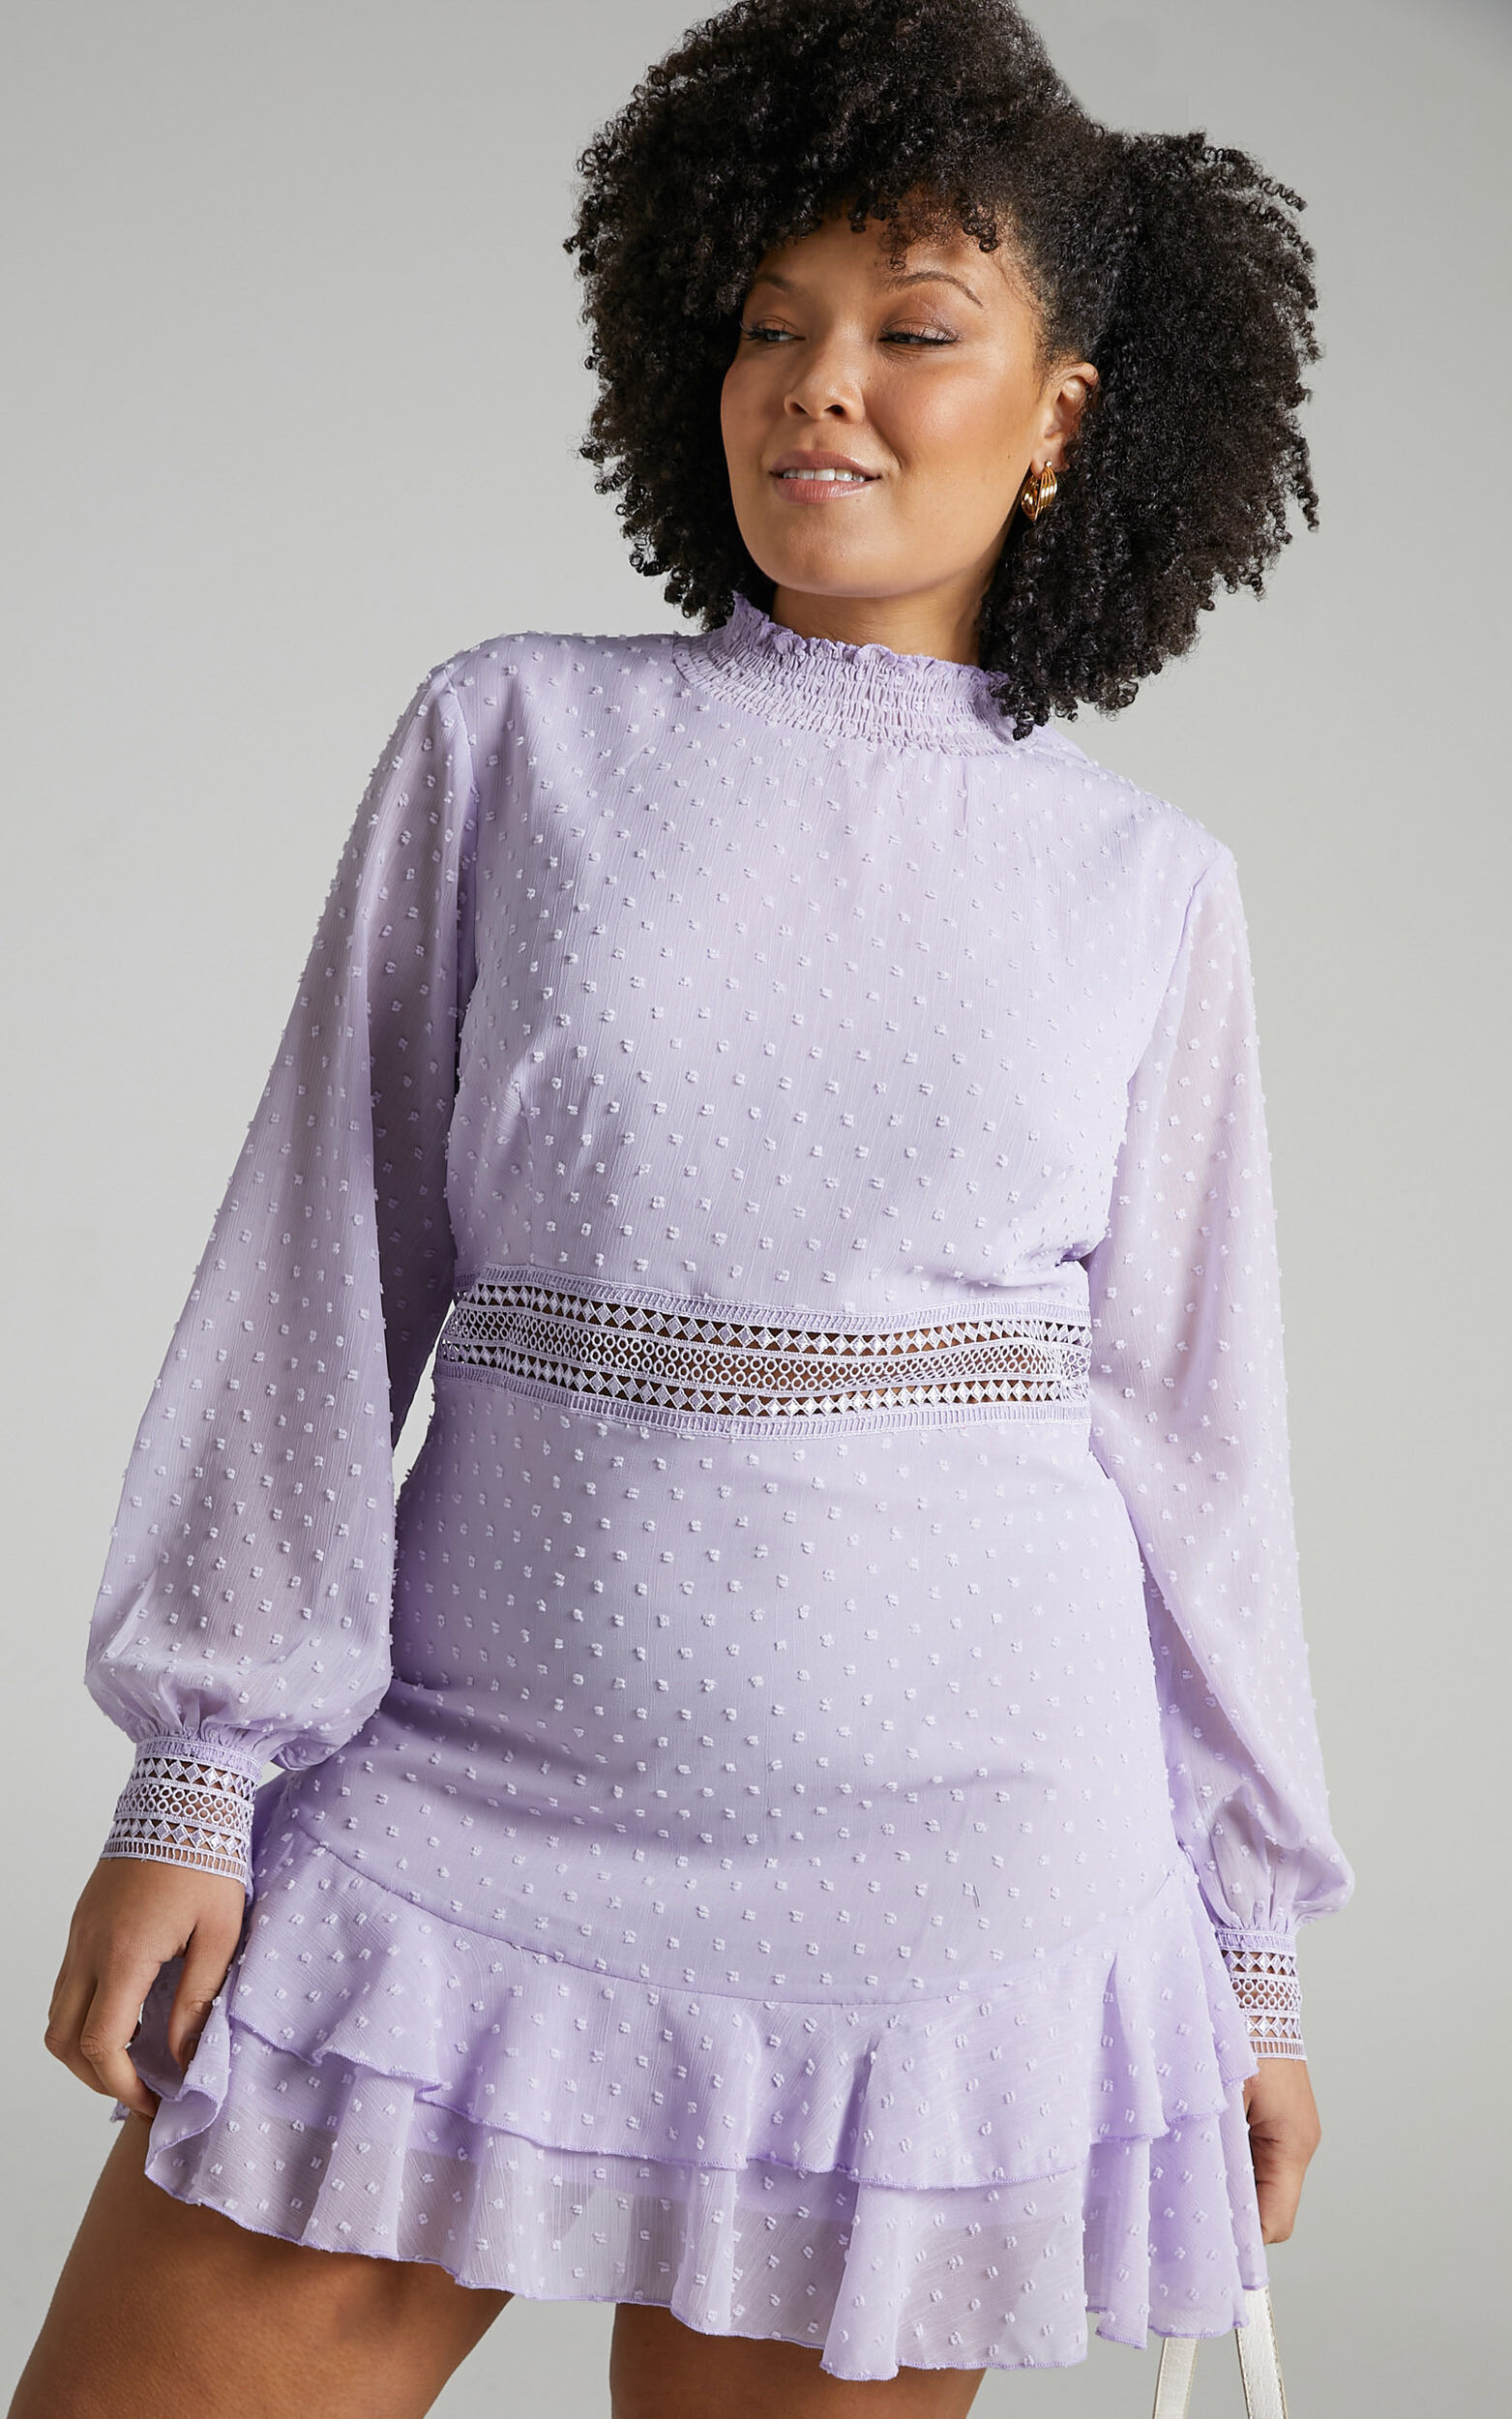 Are You Gonna Kiss Me Long Sleeve Mini Dress in Lilac - 04, PRP3, super-hi-res image number null